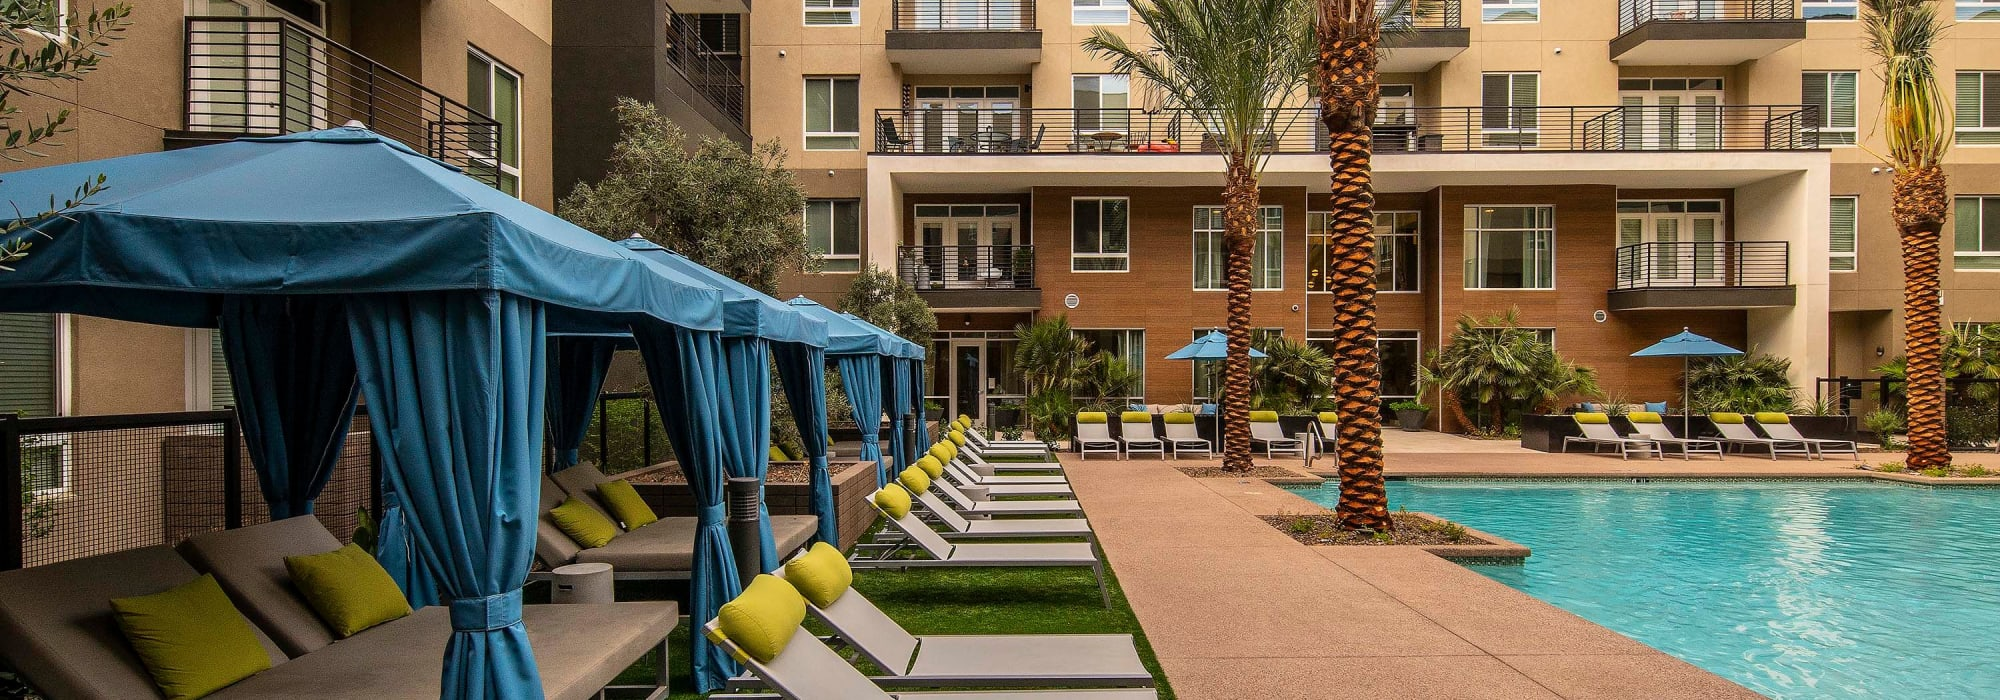 Resort-style swimming pool with chaise lounge chairs at Carter in Scottsdale, Arizona